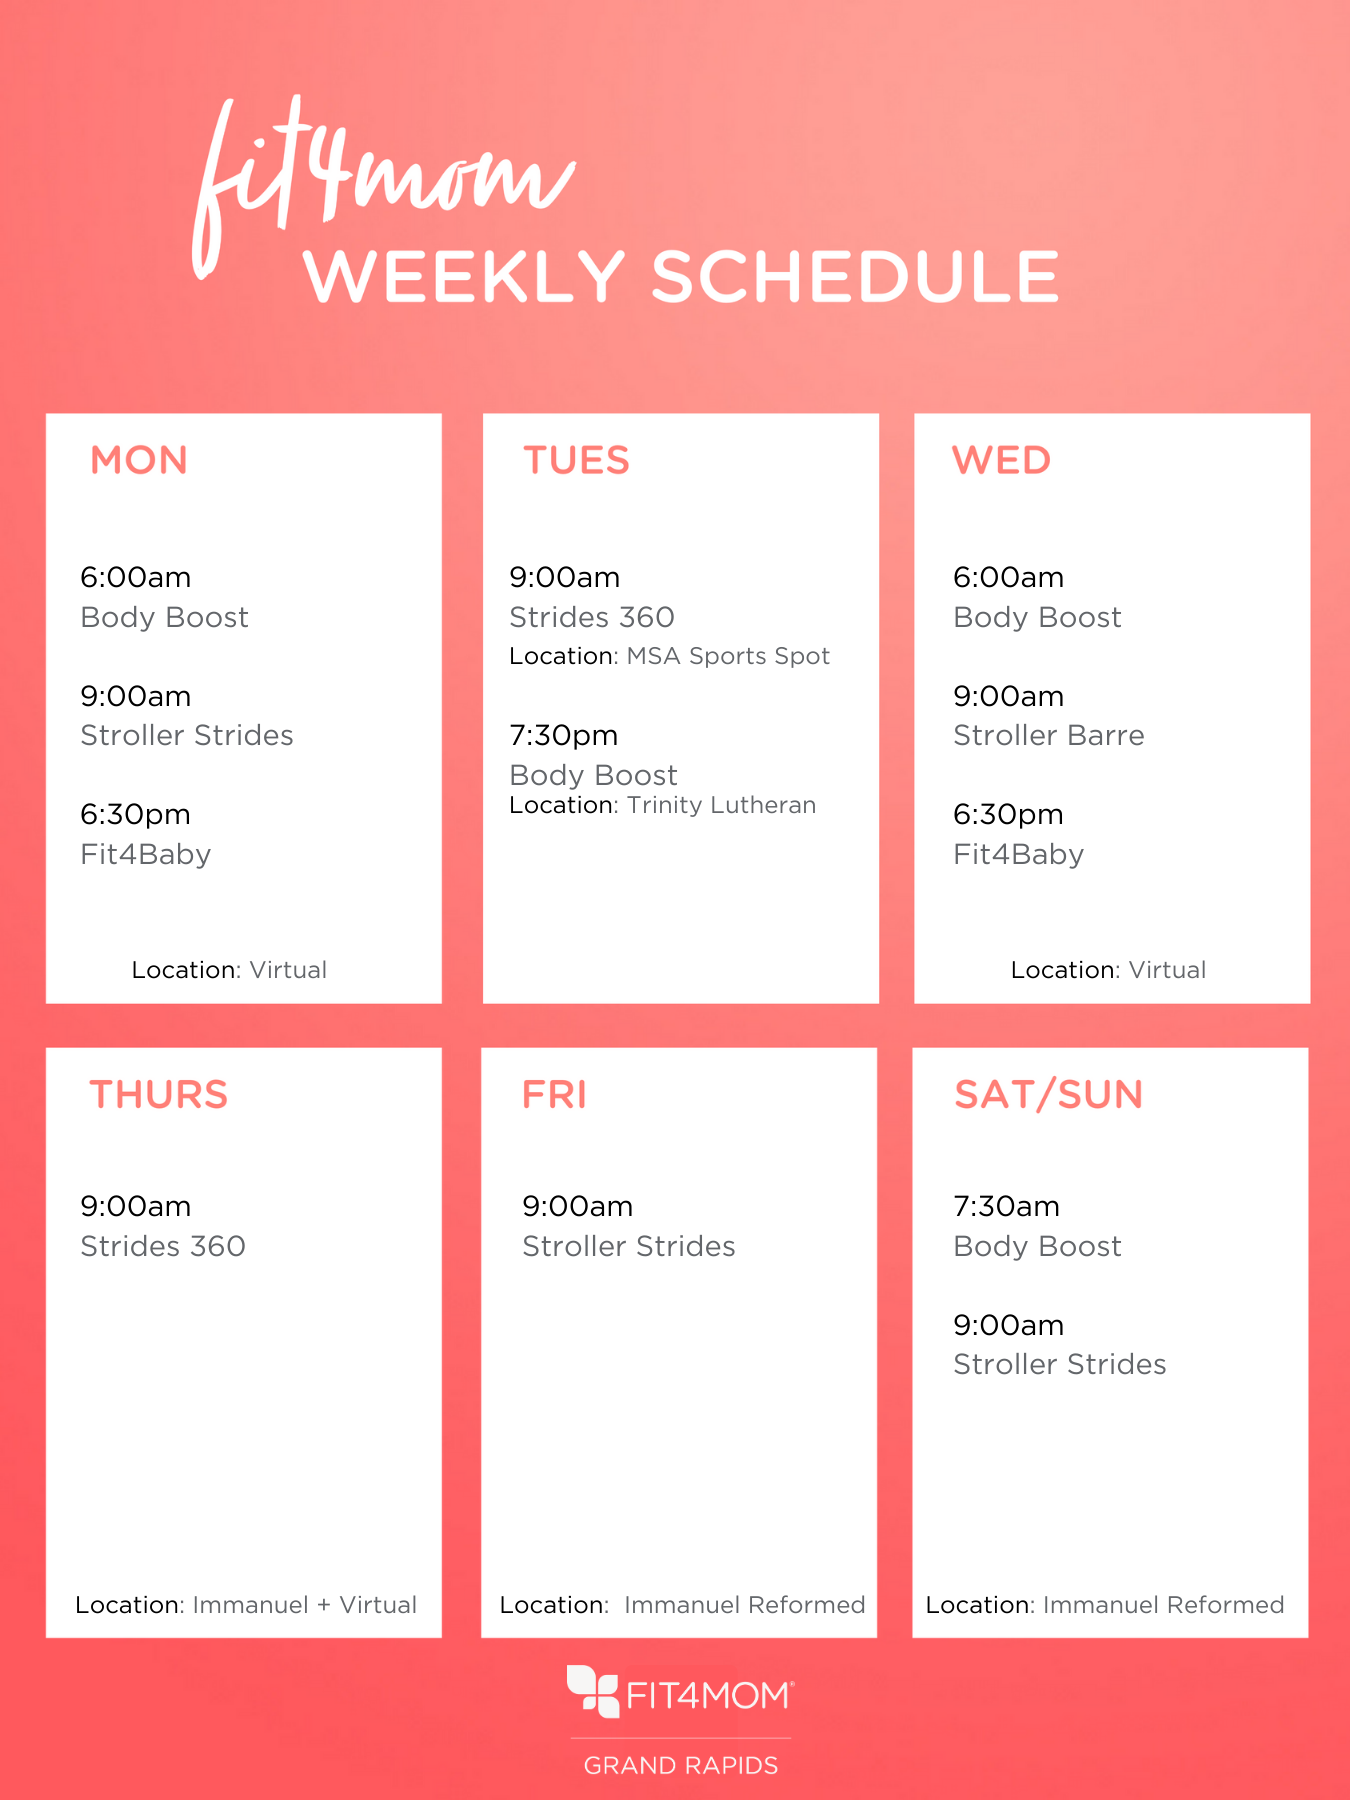 new weekly schedule (3).png